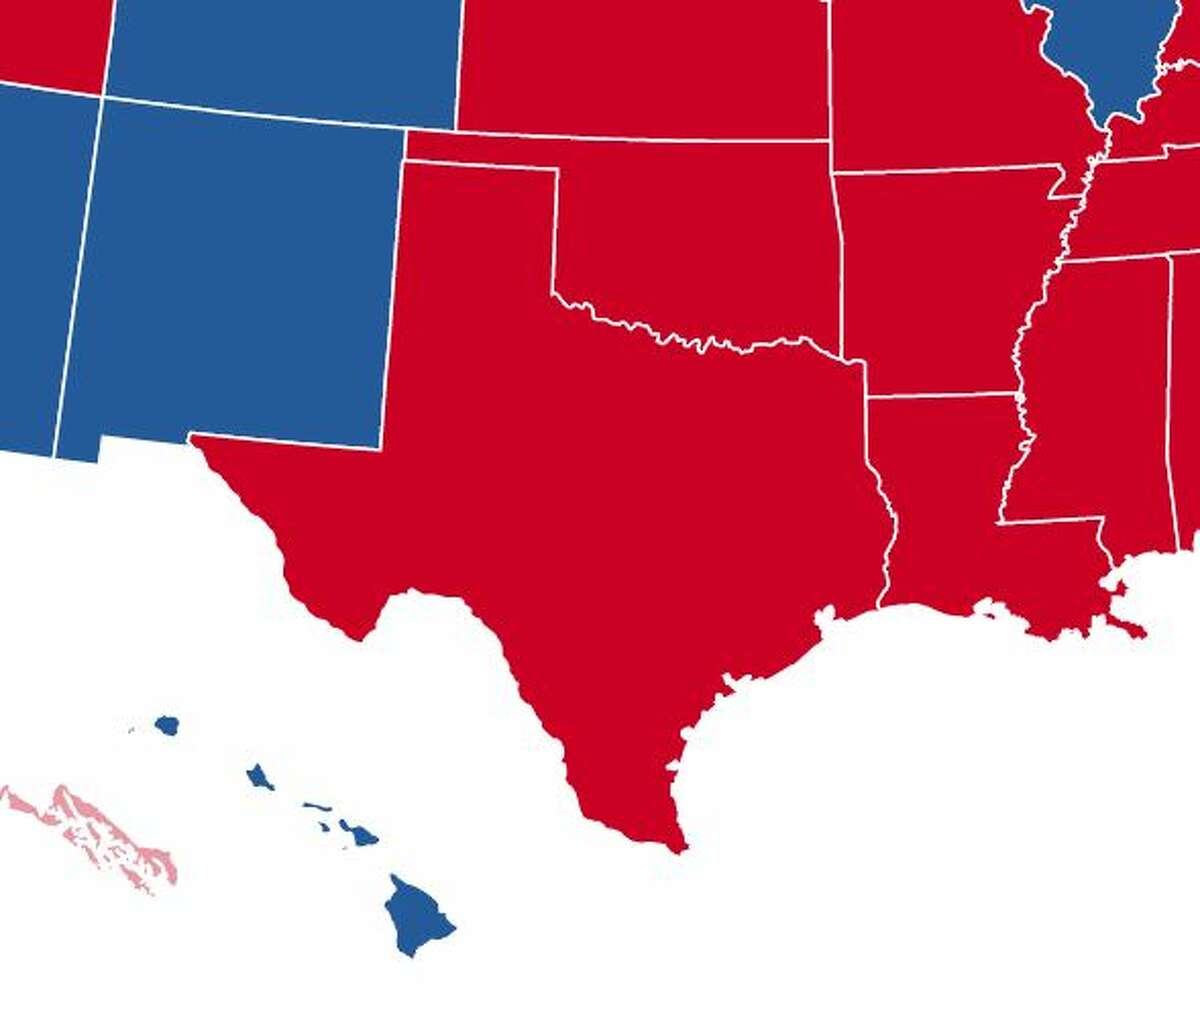 Texas remained big and red for the 2020 election.